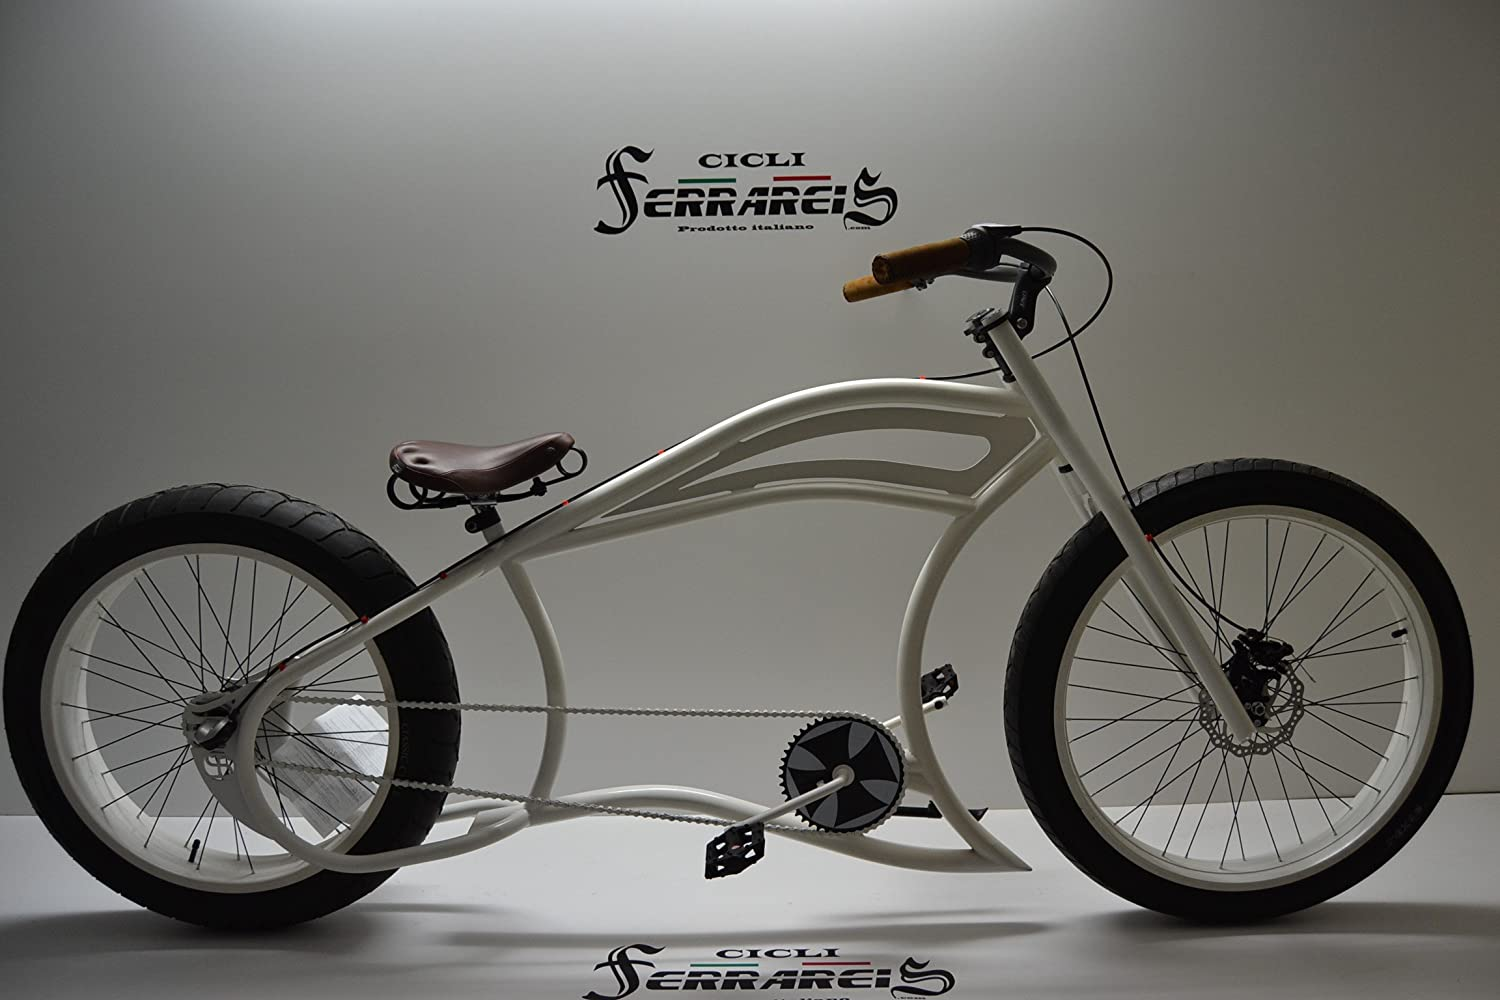 Cicli Ferrareis Fat Bike Cruiser Custom Garage: Amazon.es ...